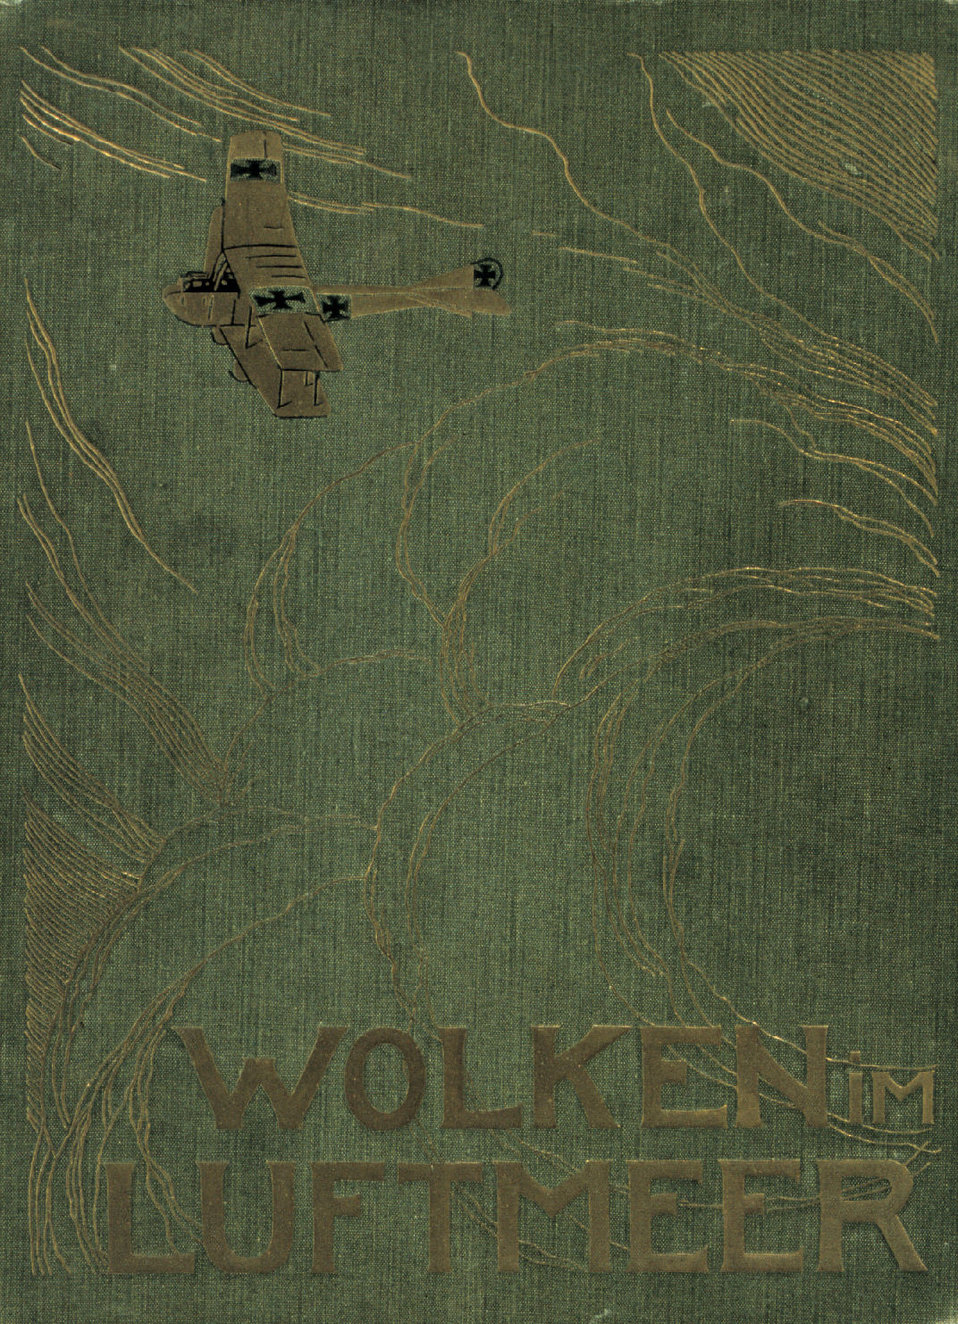 The cover of 'Wolken im Luftmeer' The embossed cover of a German cloud atlas produced for the German Air Forces. Library Call No.  QC923 .W65 1917 .